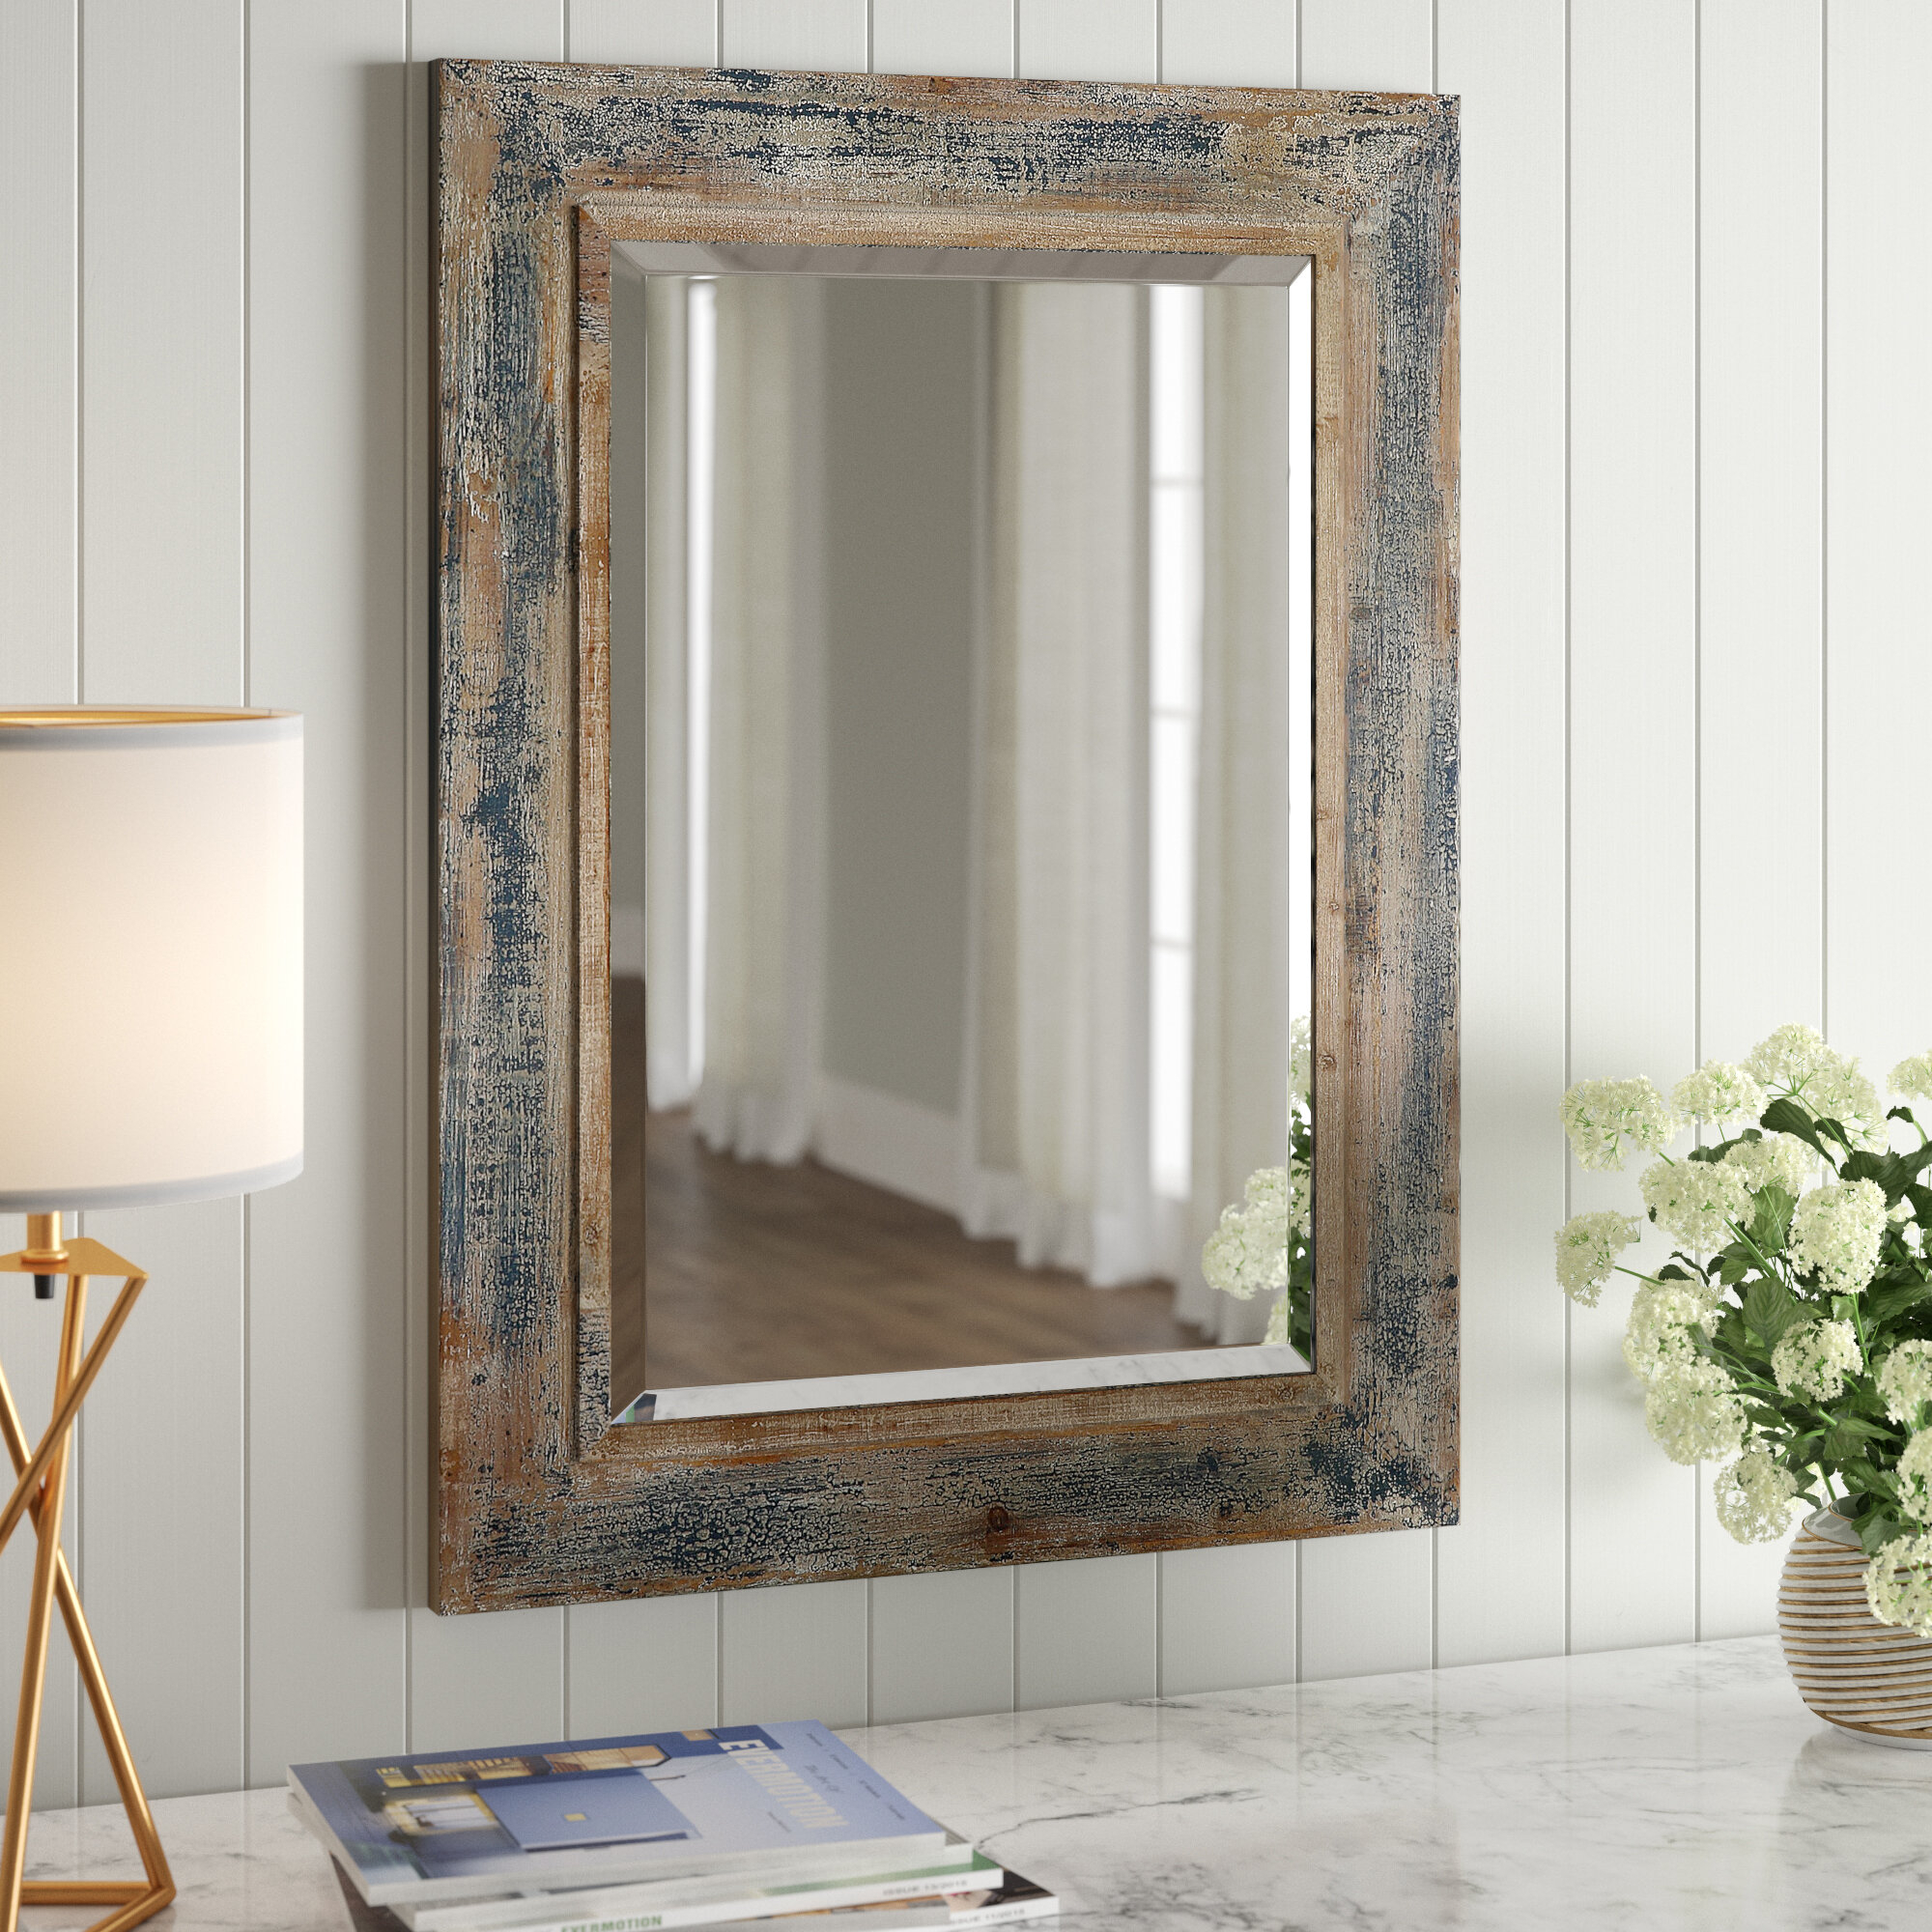 Saylor Wall Mirror | Joss & Main Intended For Janie Rectangular Wall Mirrors (Image 18 of 20)